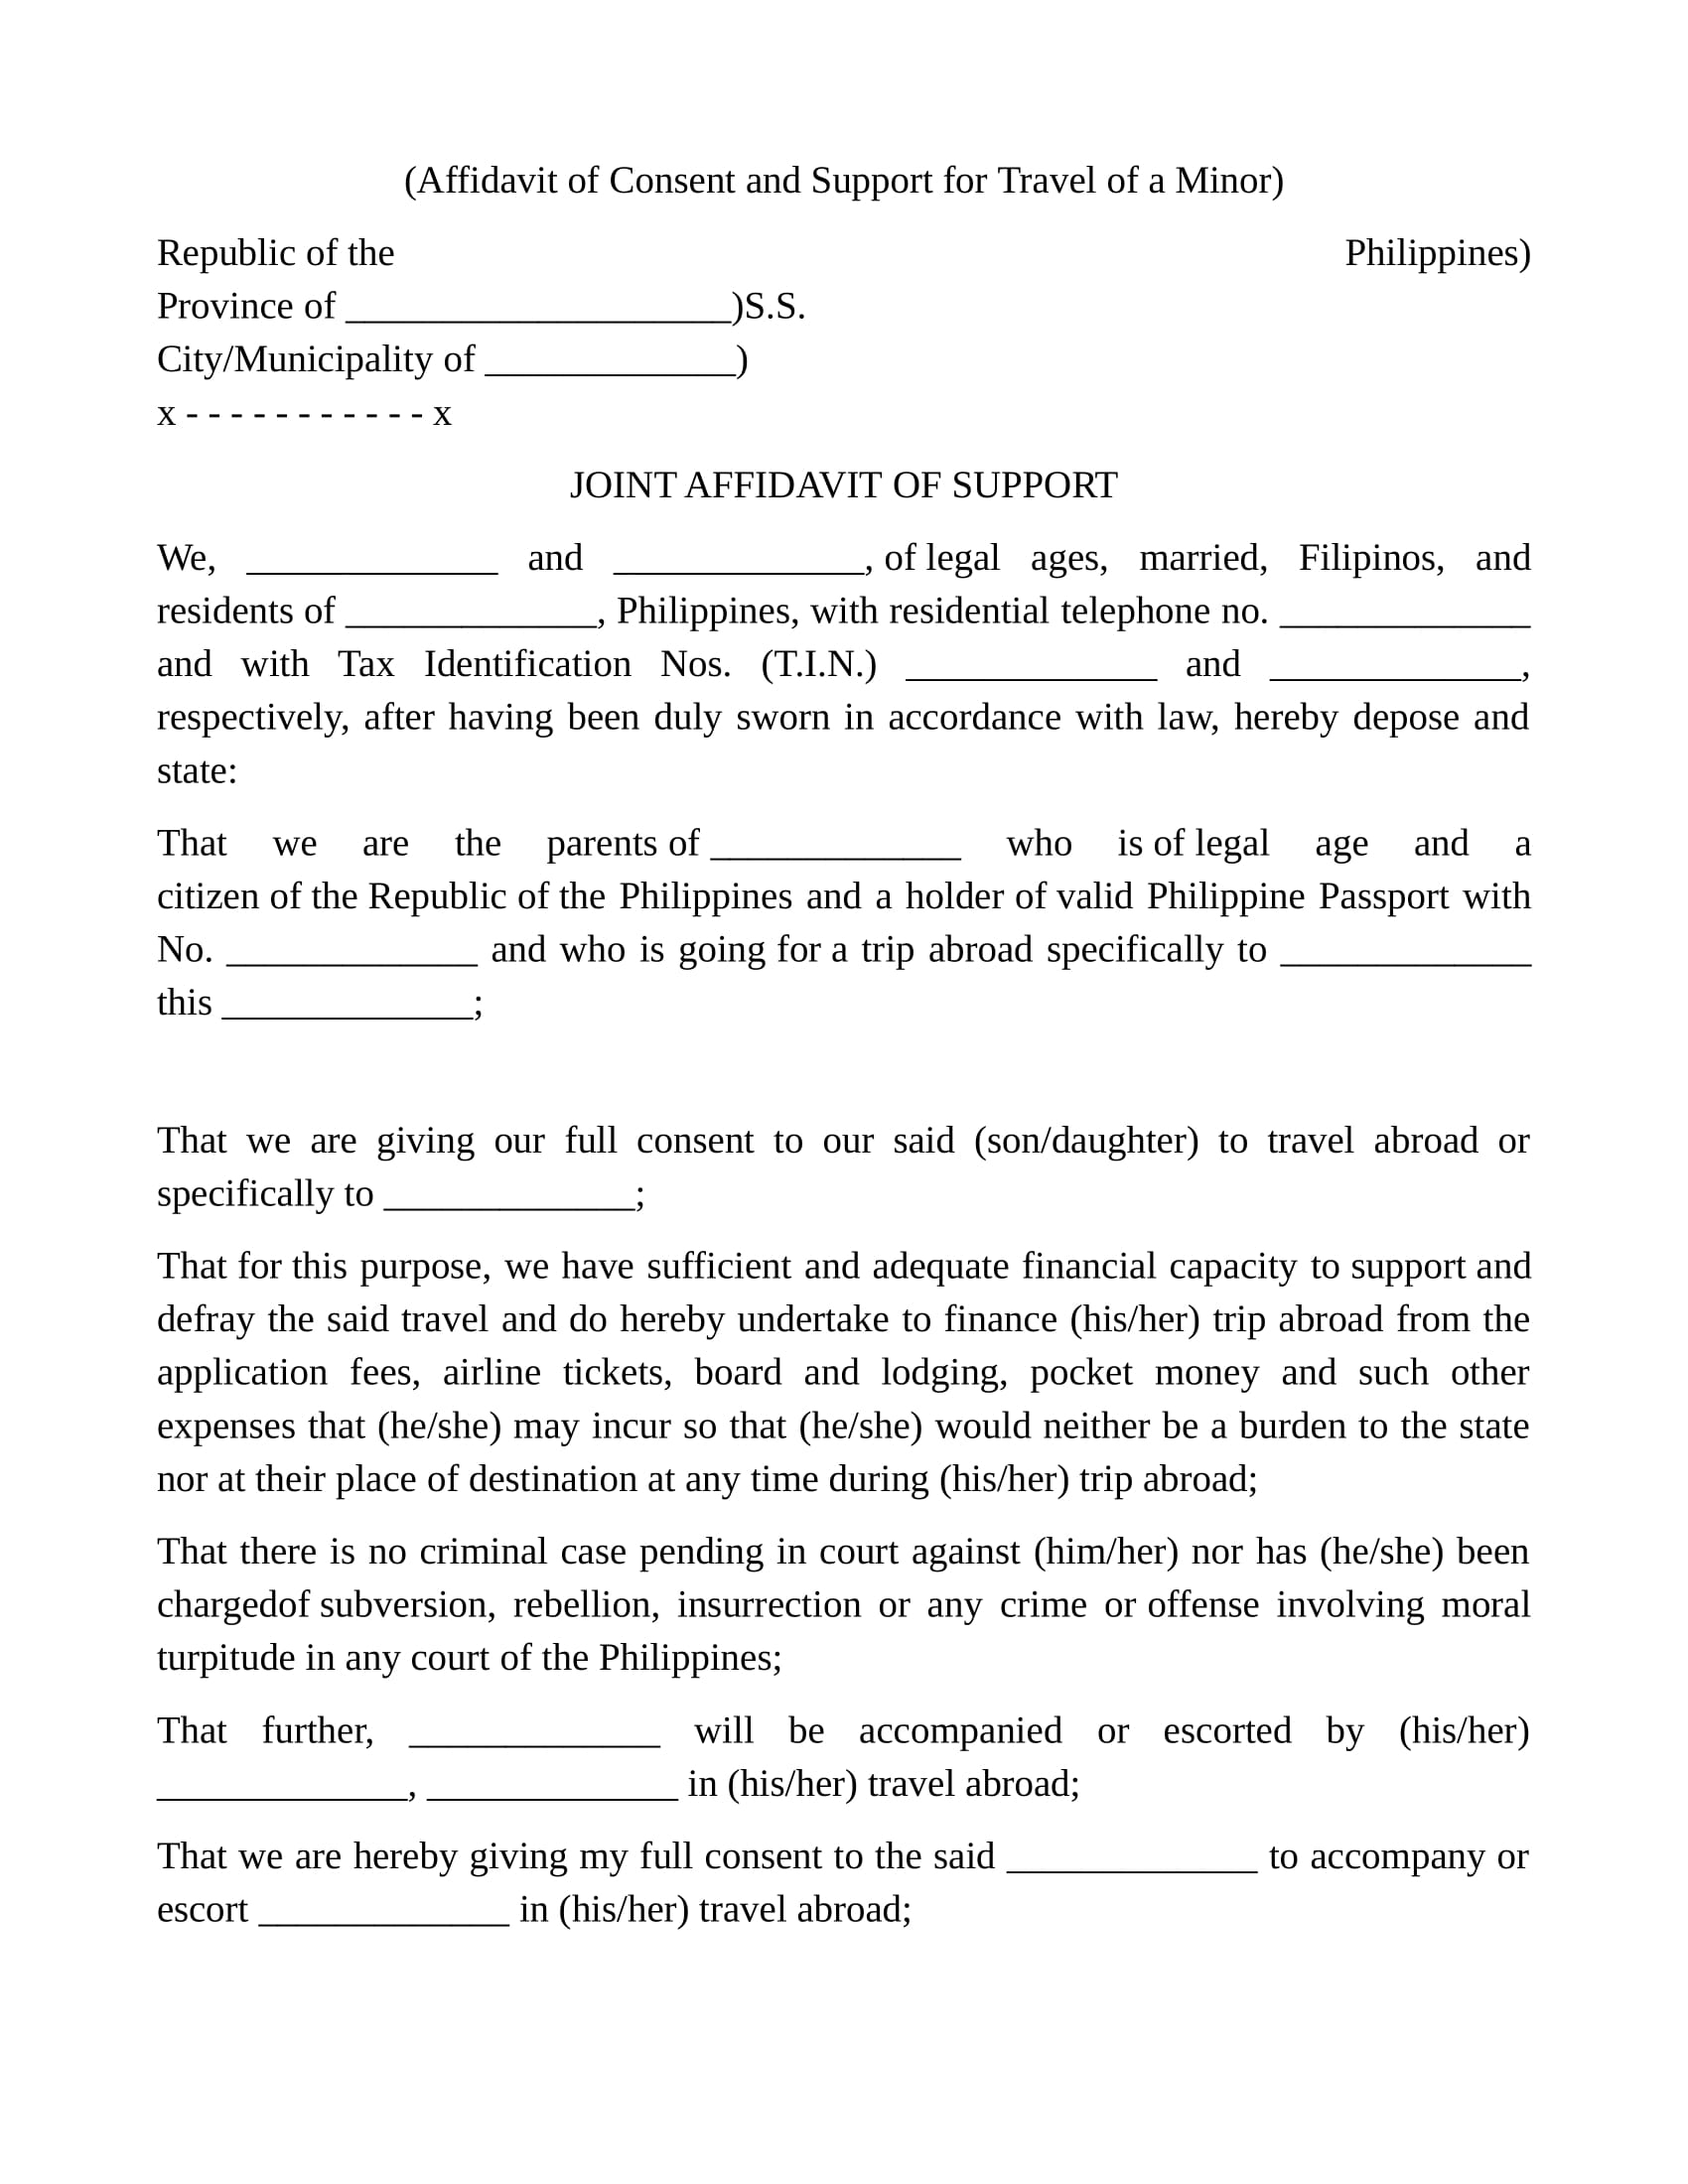 affidavit of consent and support